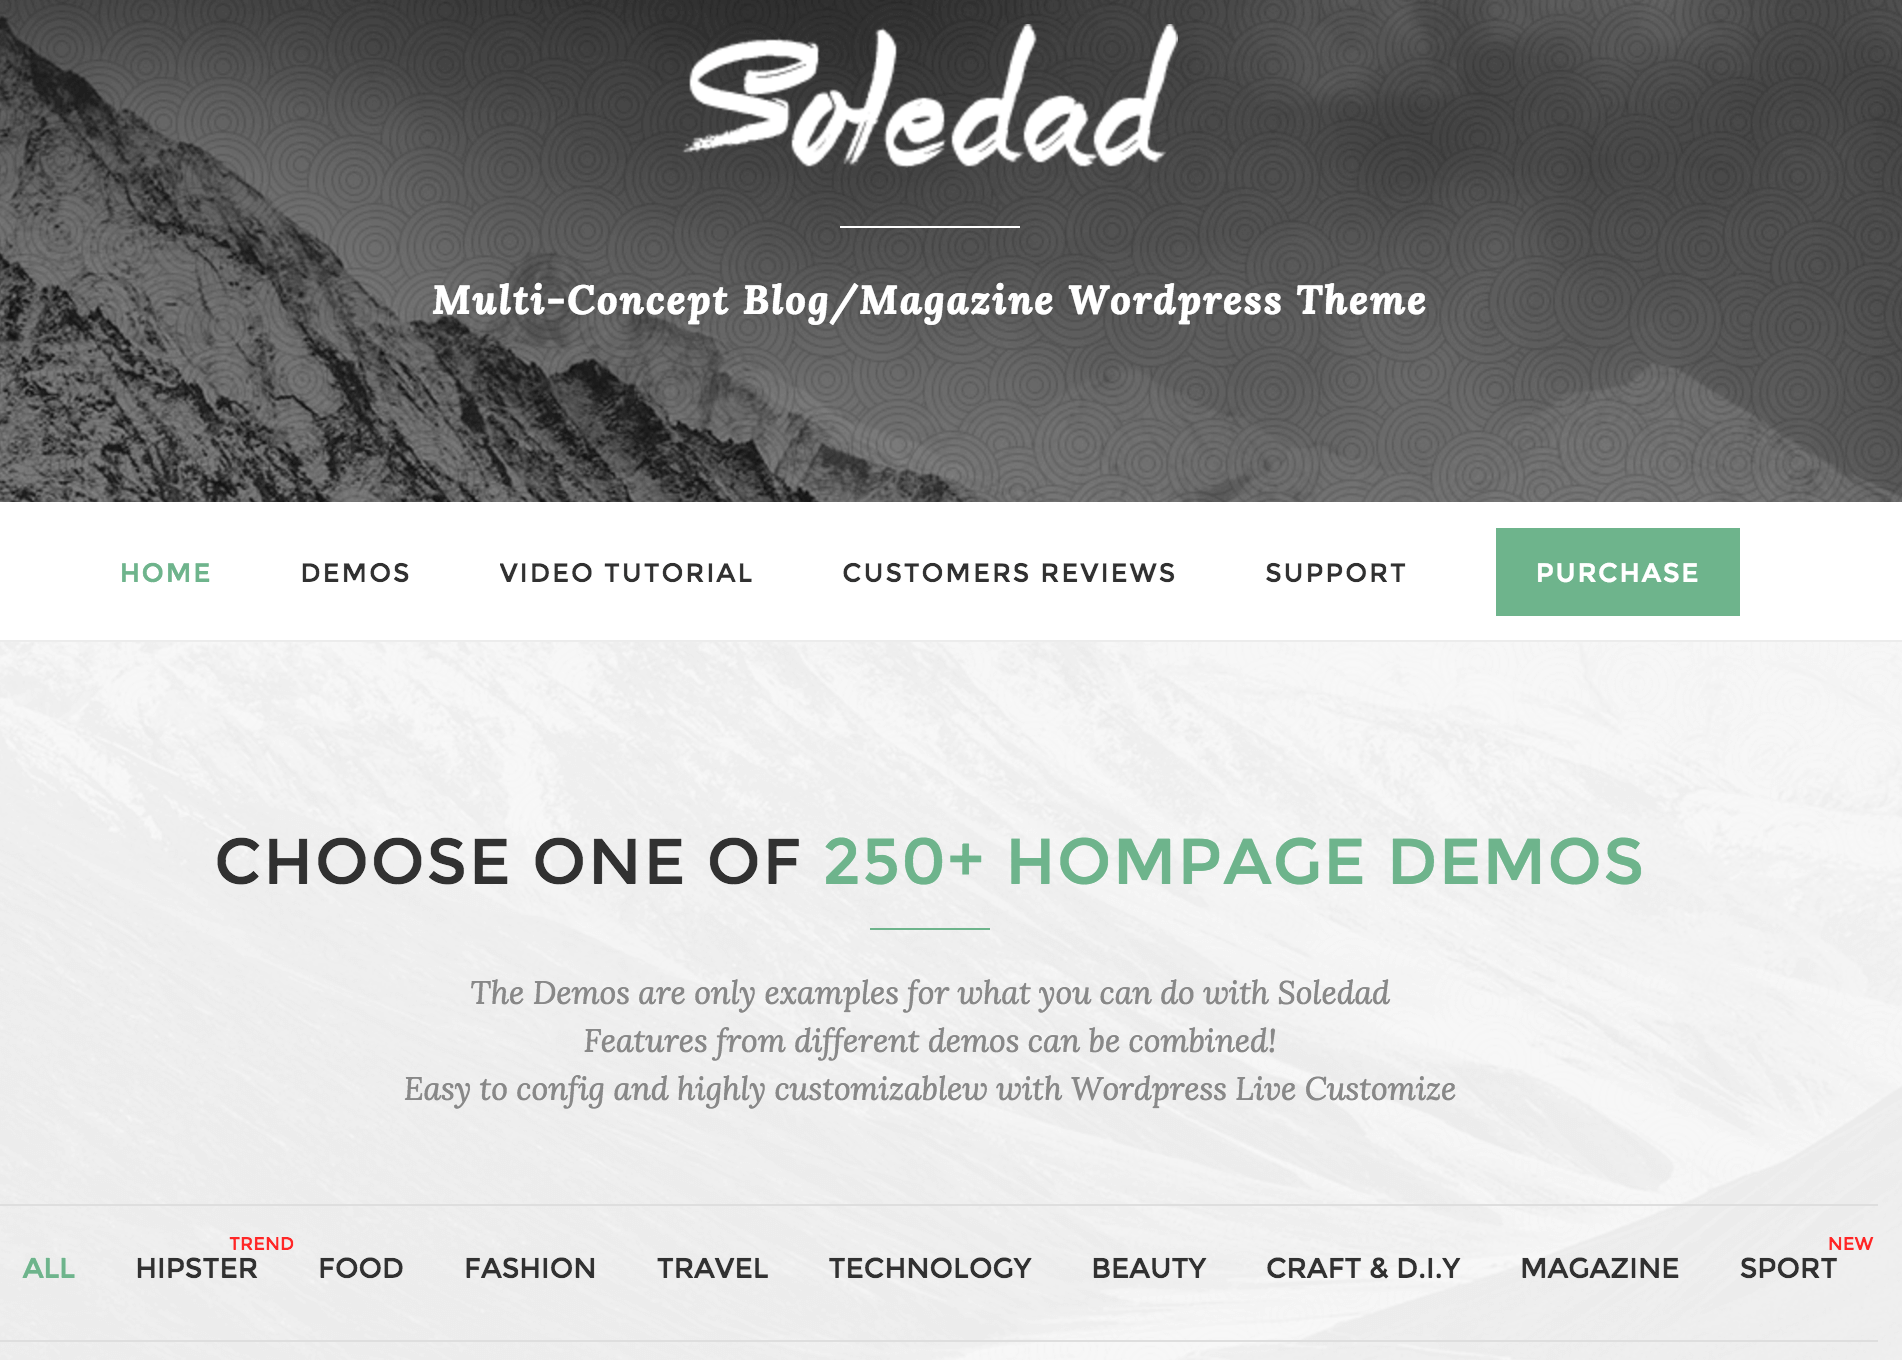 A screenshot of the Soledad theme.